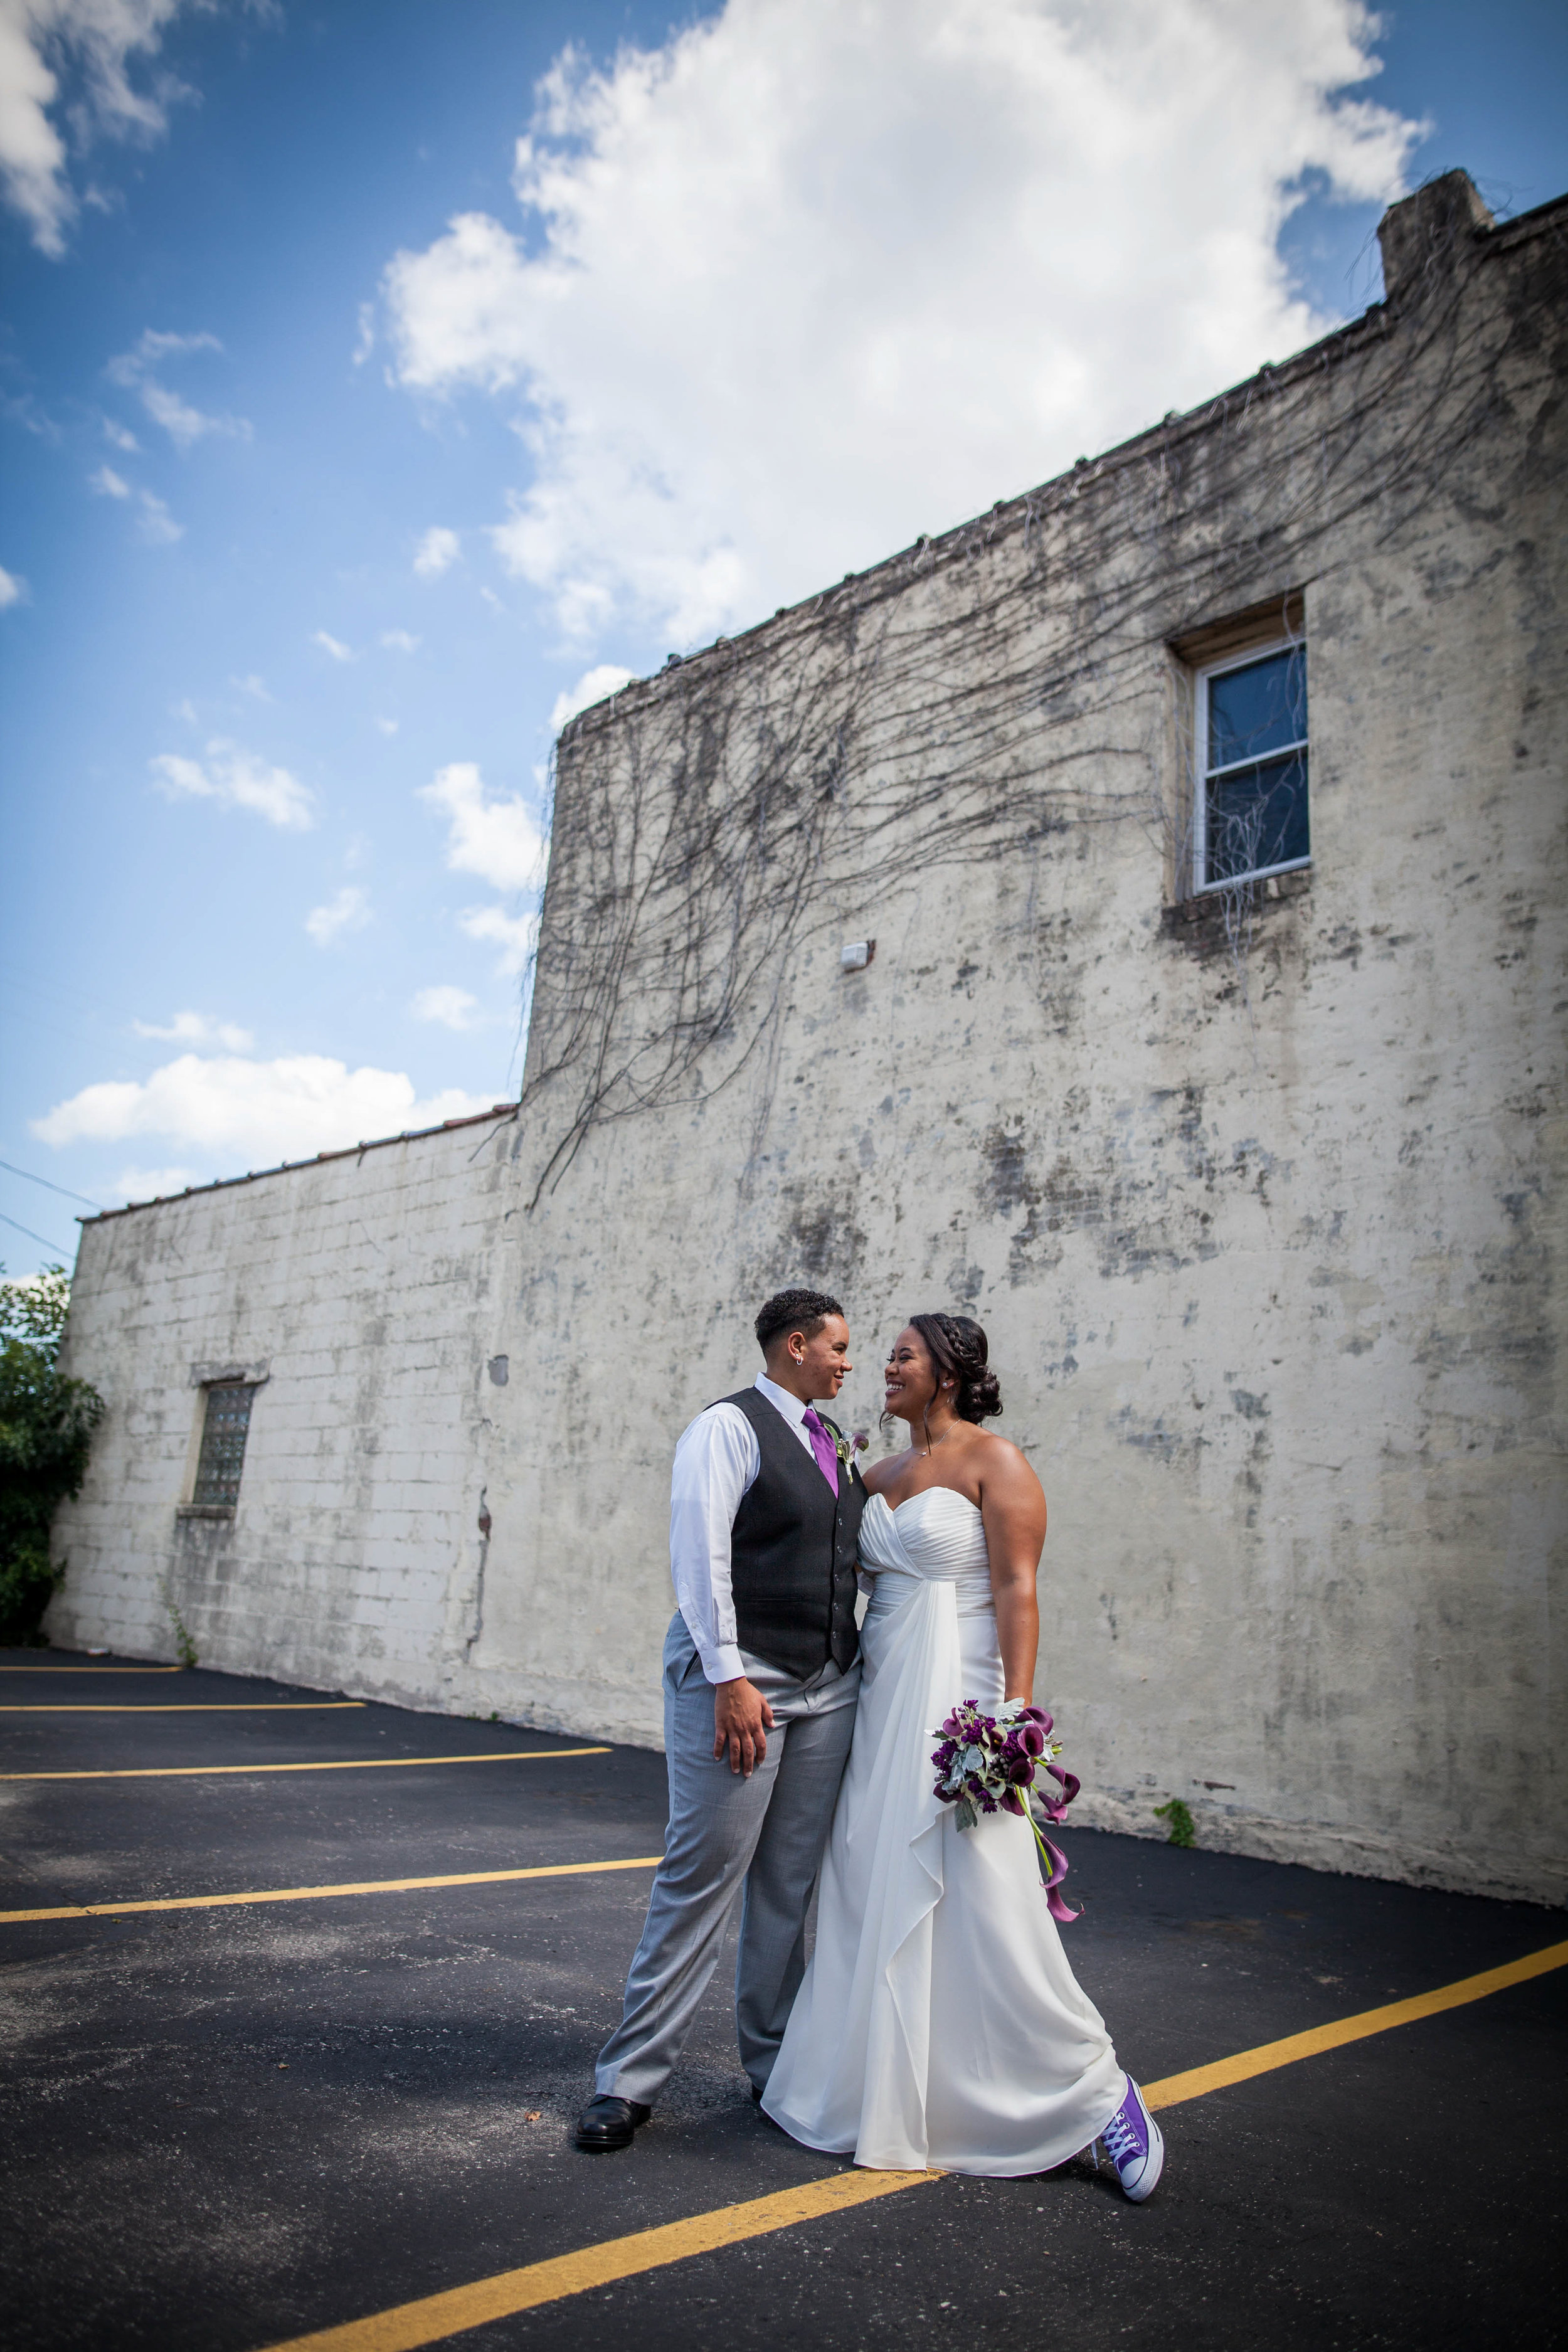 Kansas+City_Small+Wedding_Venue_Elope_Intimate_Ceremony_Constance & Carissa-233.jpg